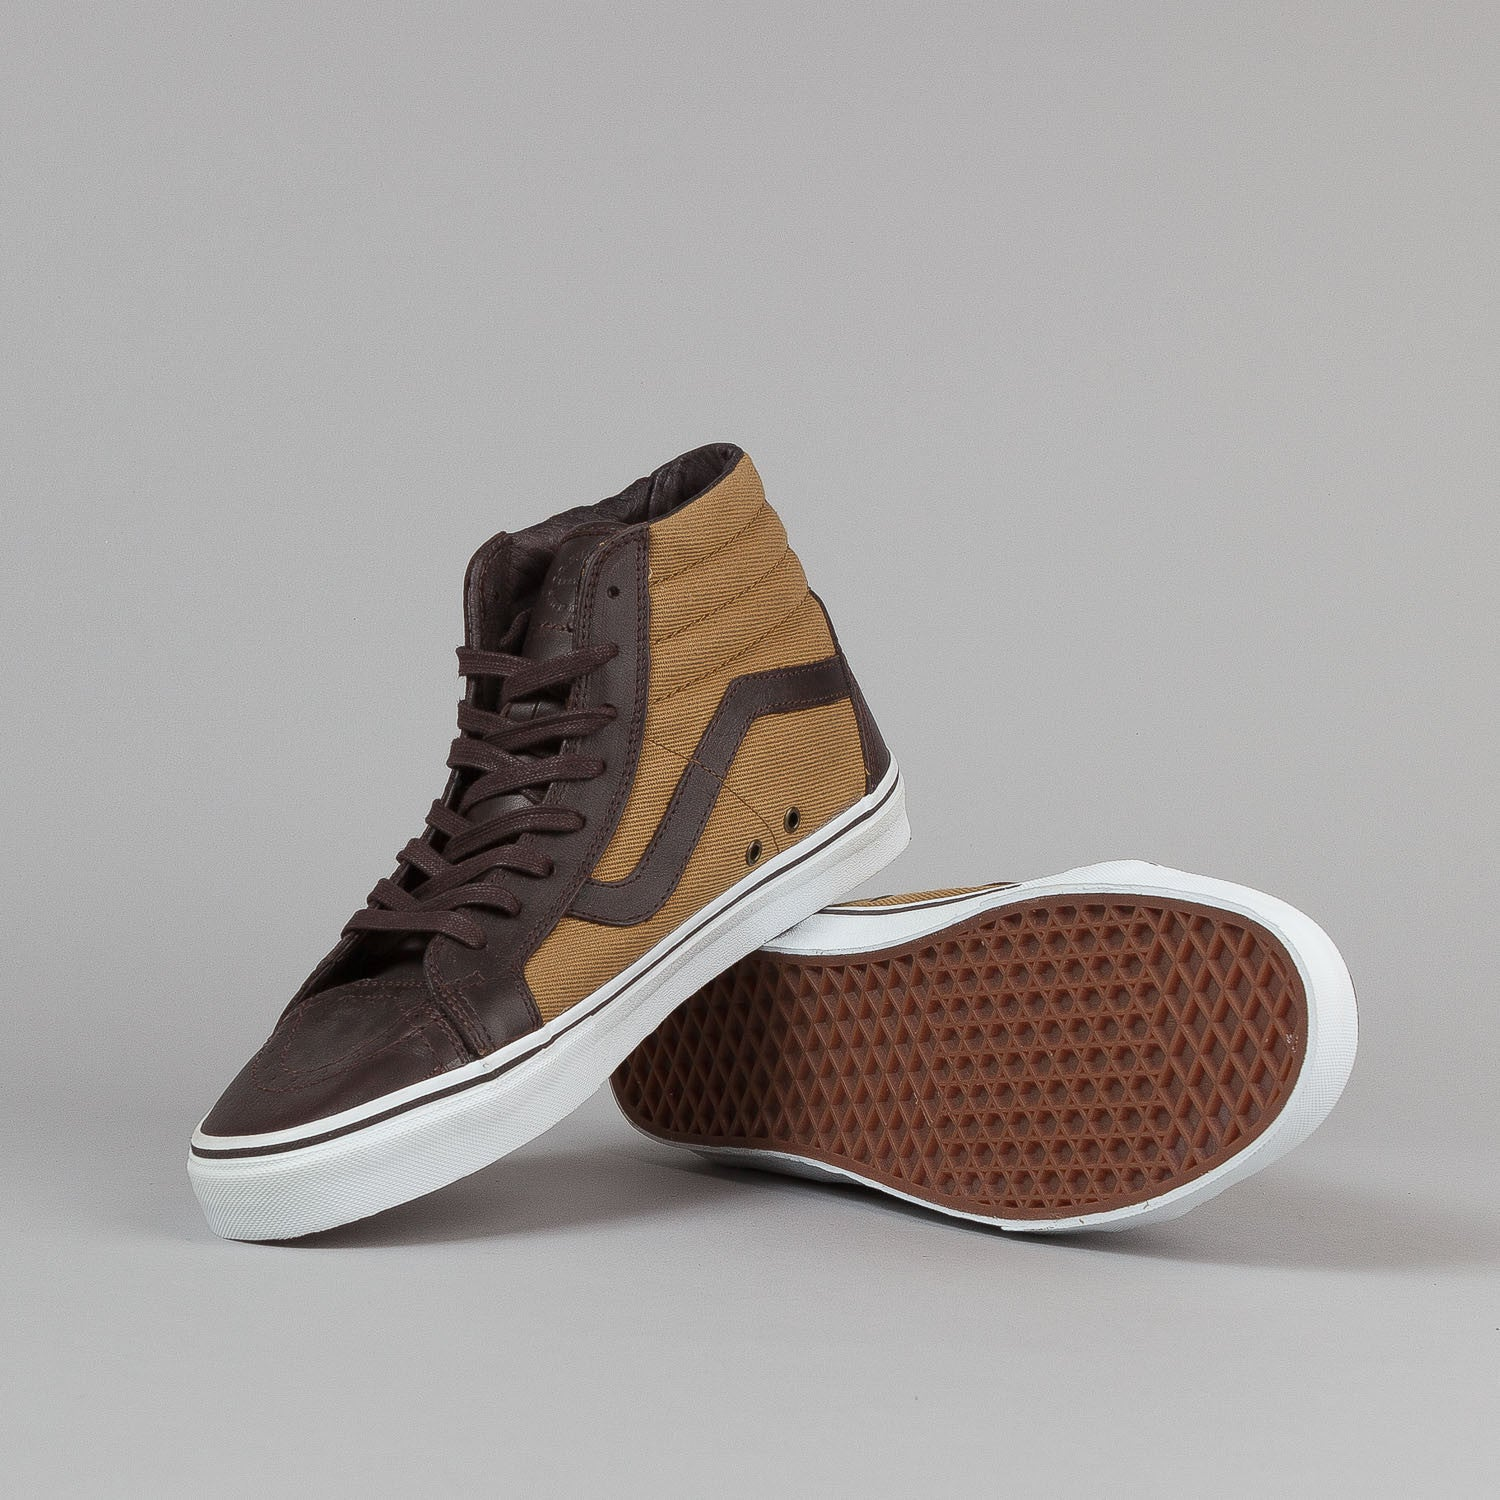 Vans Vault X Filson Sk8-Hi Shoes - Brown / Tan